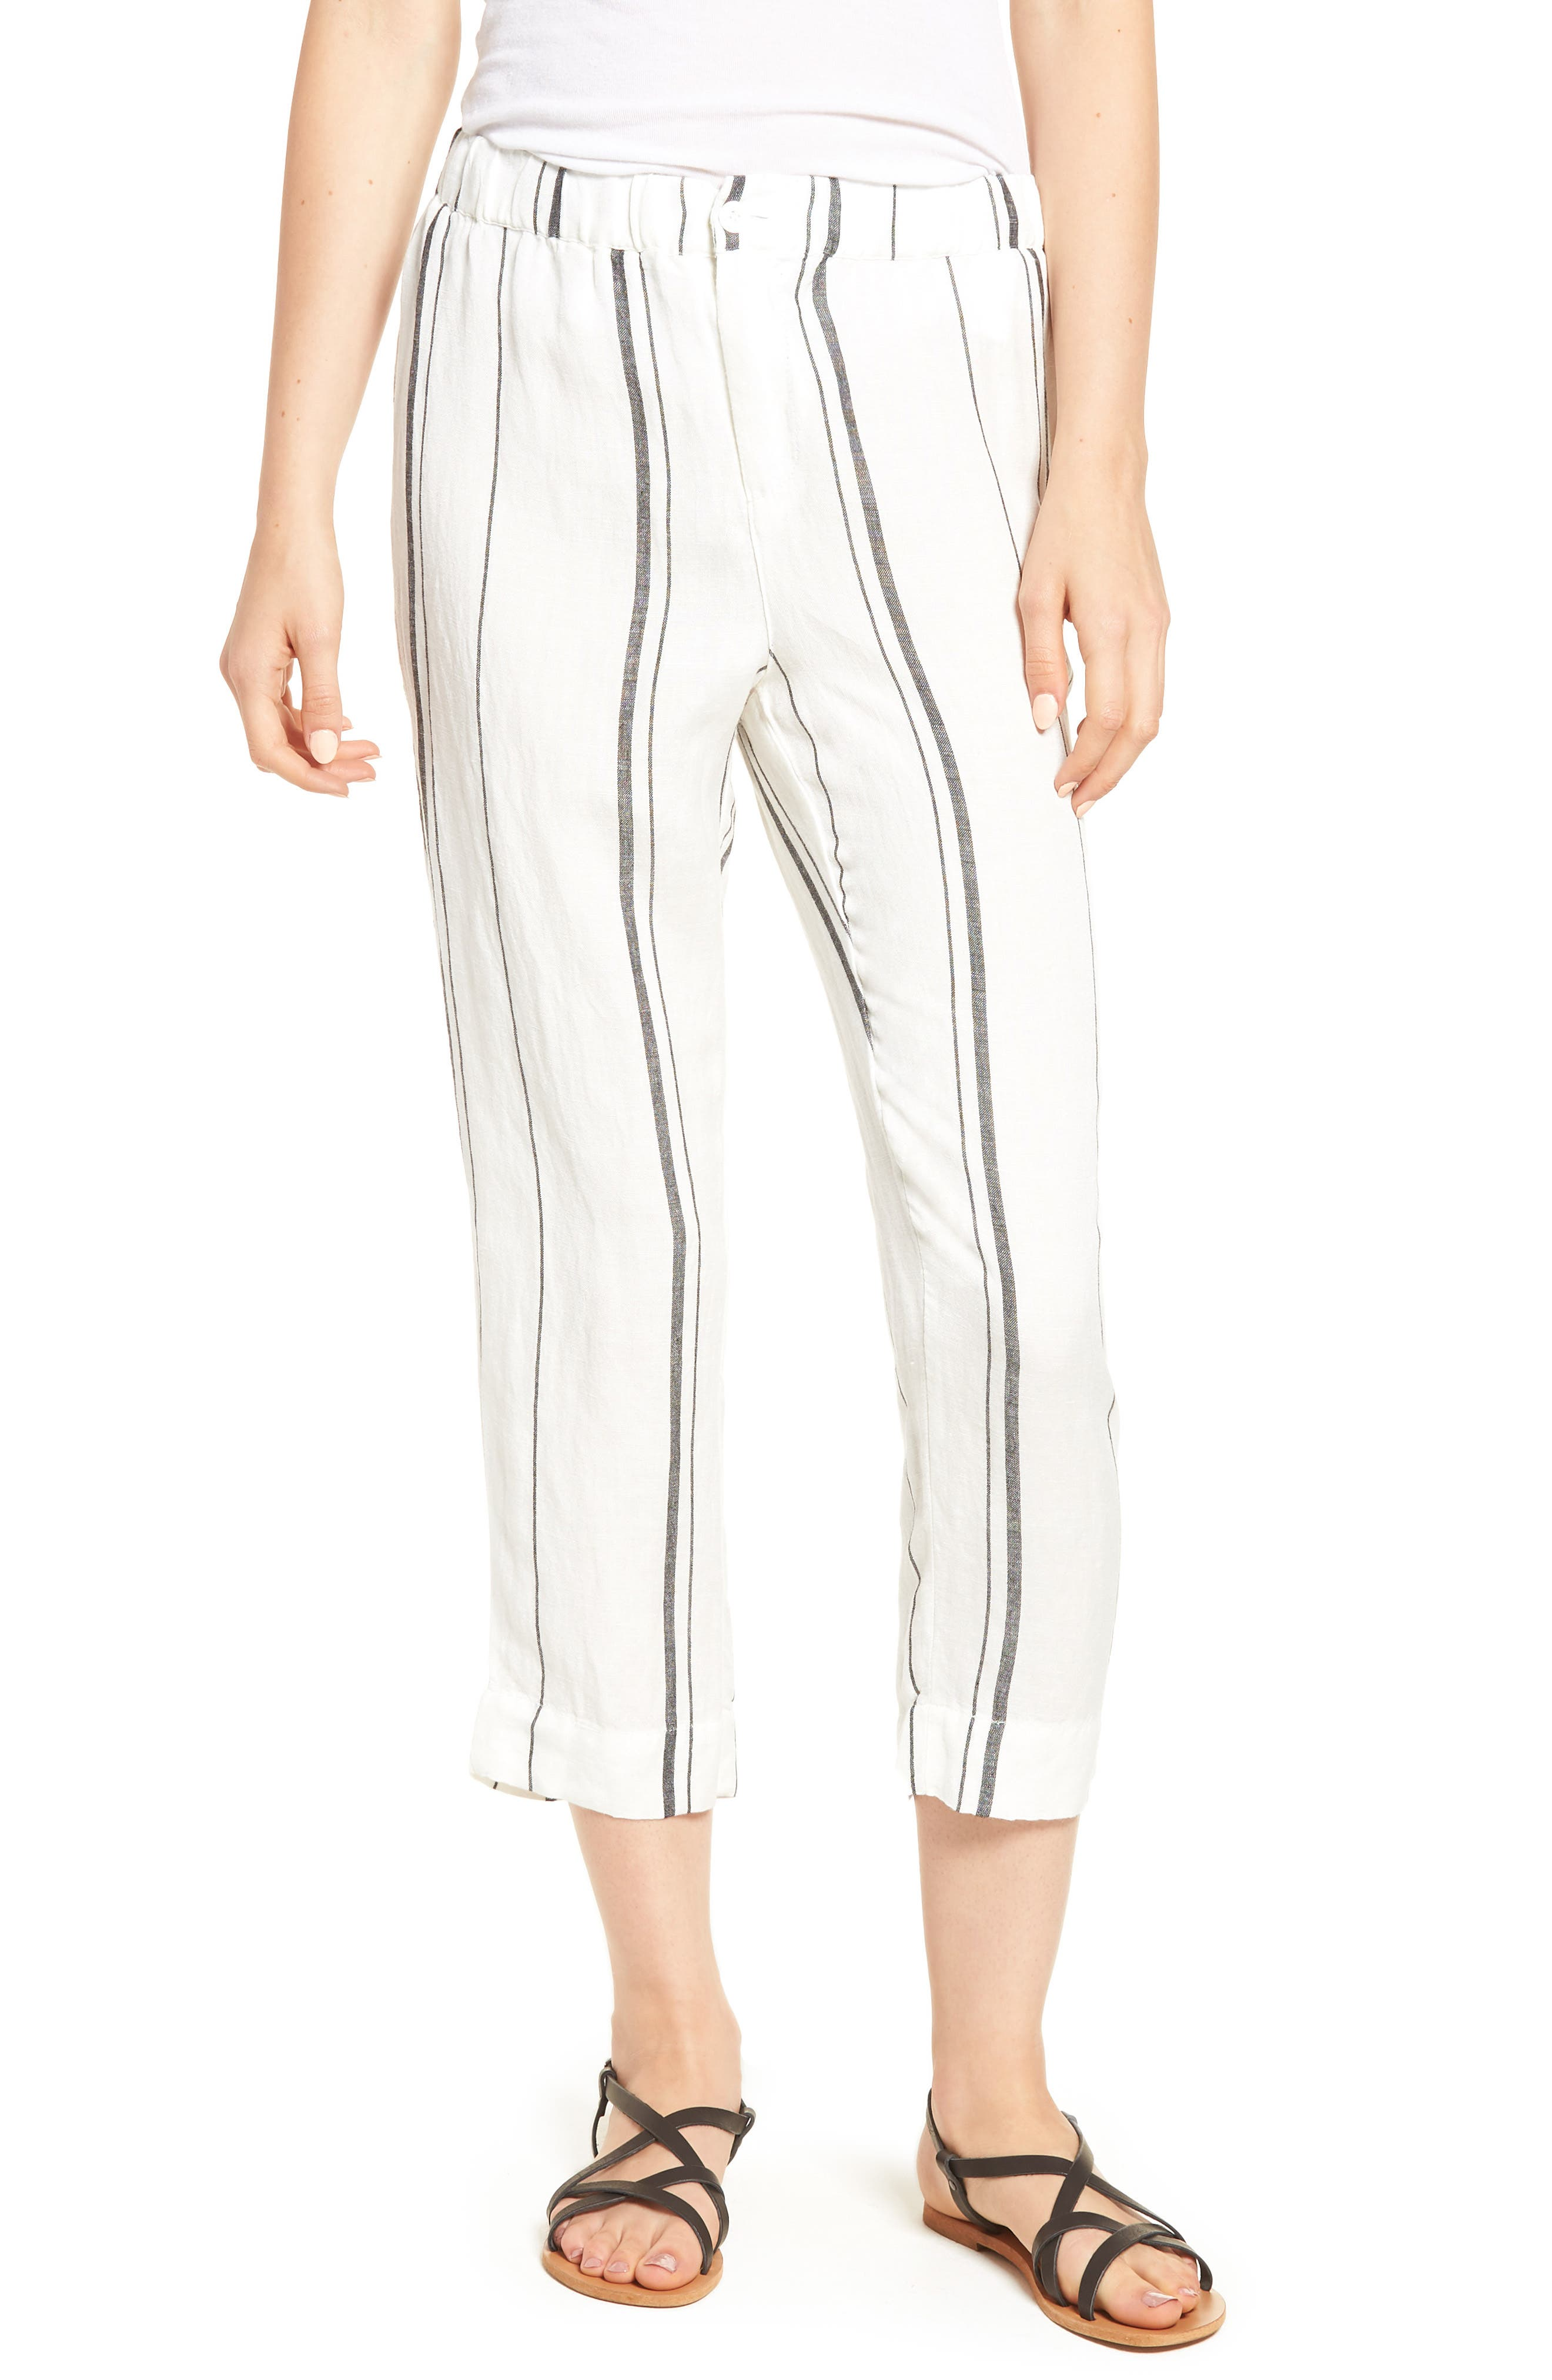 THREAD & SUPPLY,                             Annika Stripe Crop Pants,                             Main thumbnail 1, color,                             001